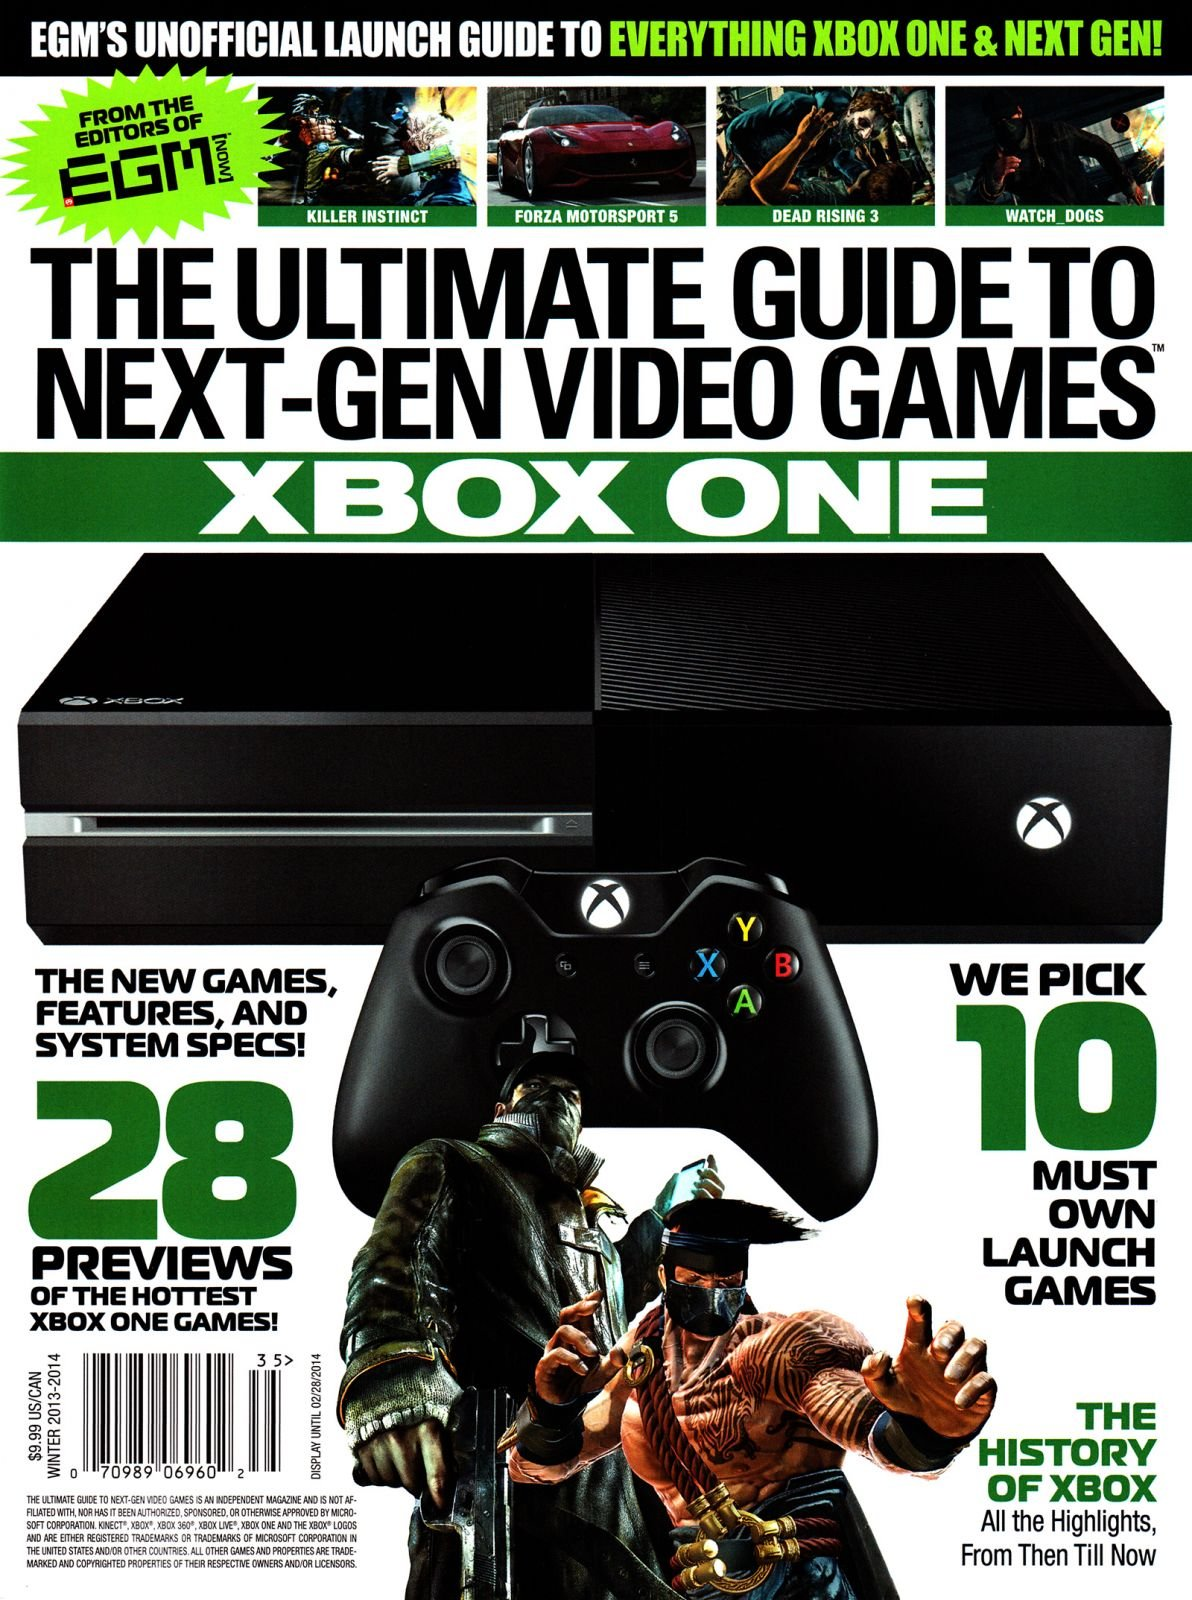 The Ultimate Guide To Next Gen Video Games - Xbox One